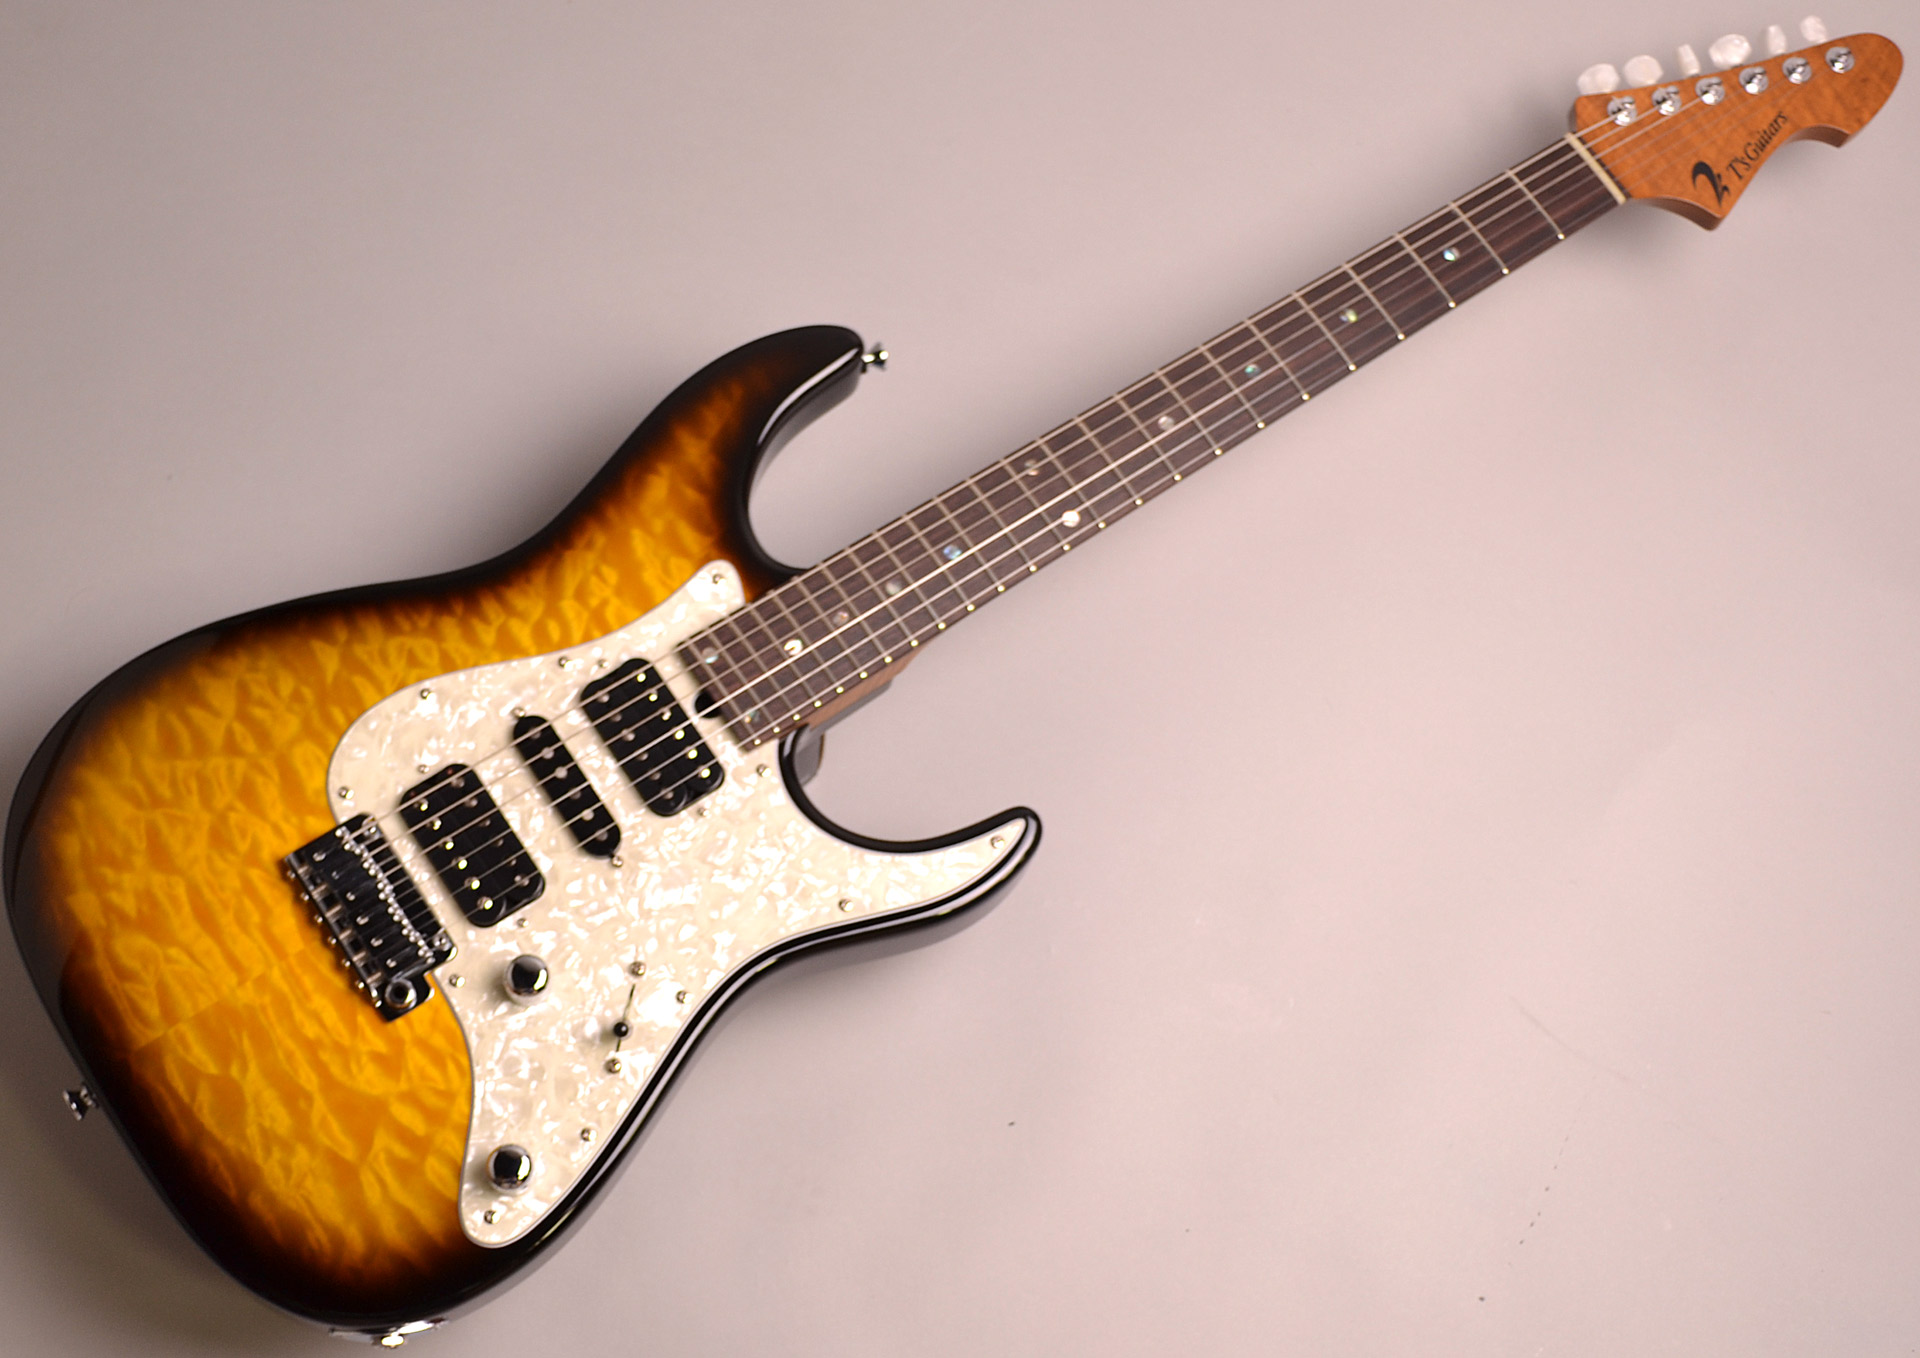 DST-Classic24F Roasted Flame Maple Neck